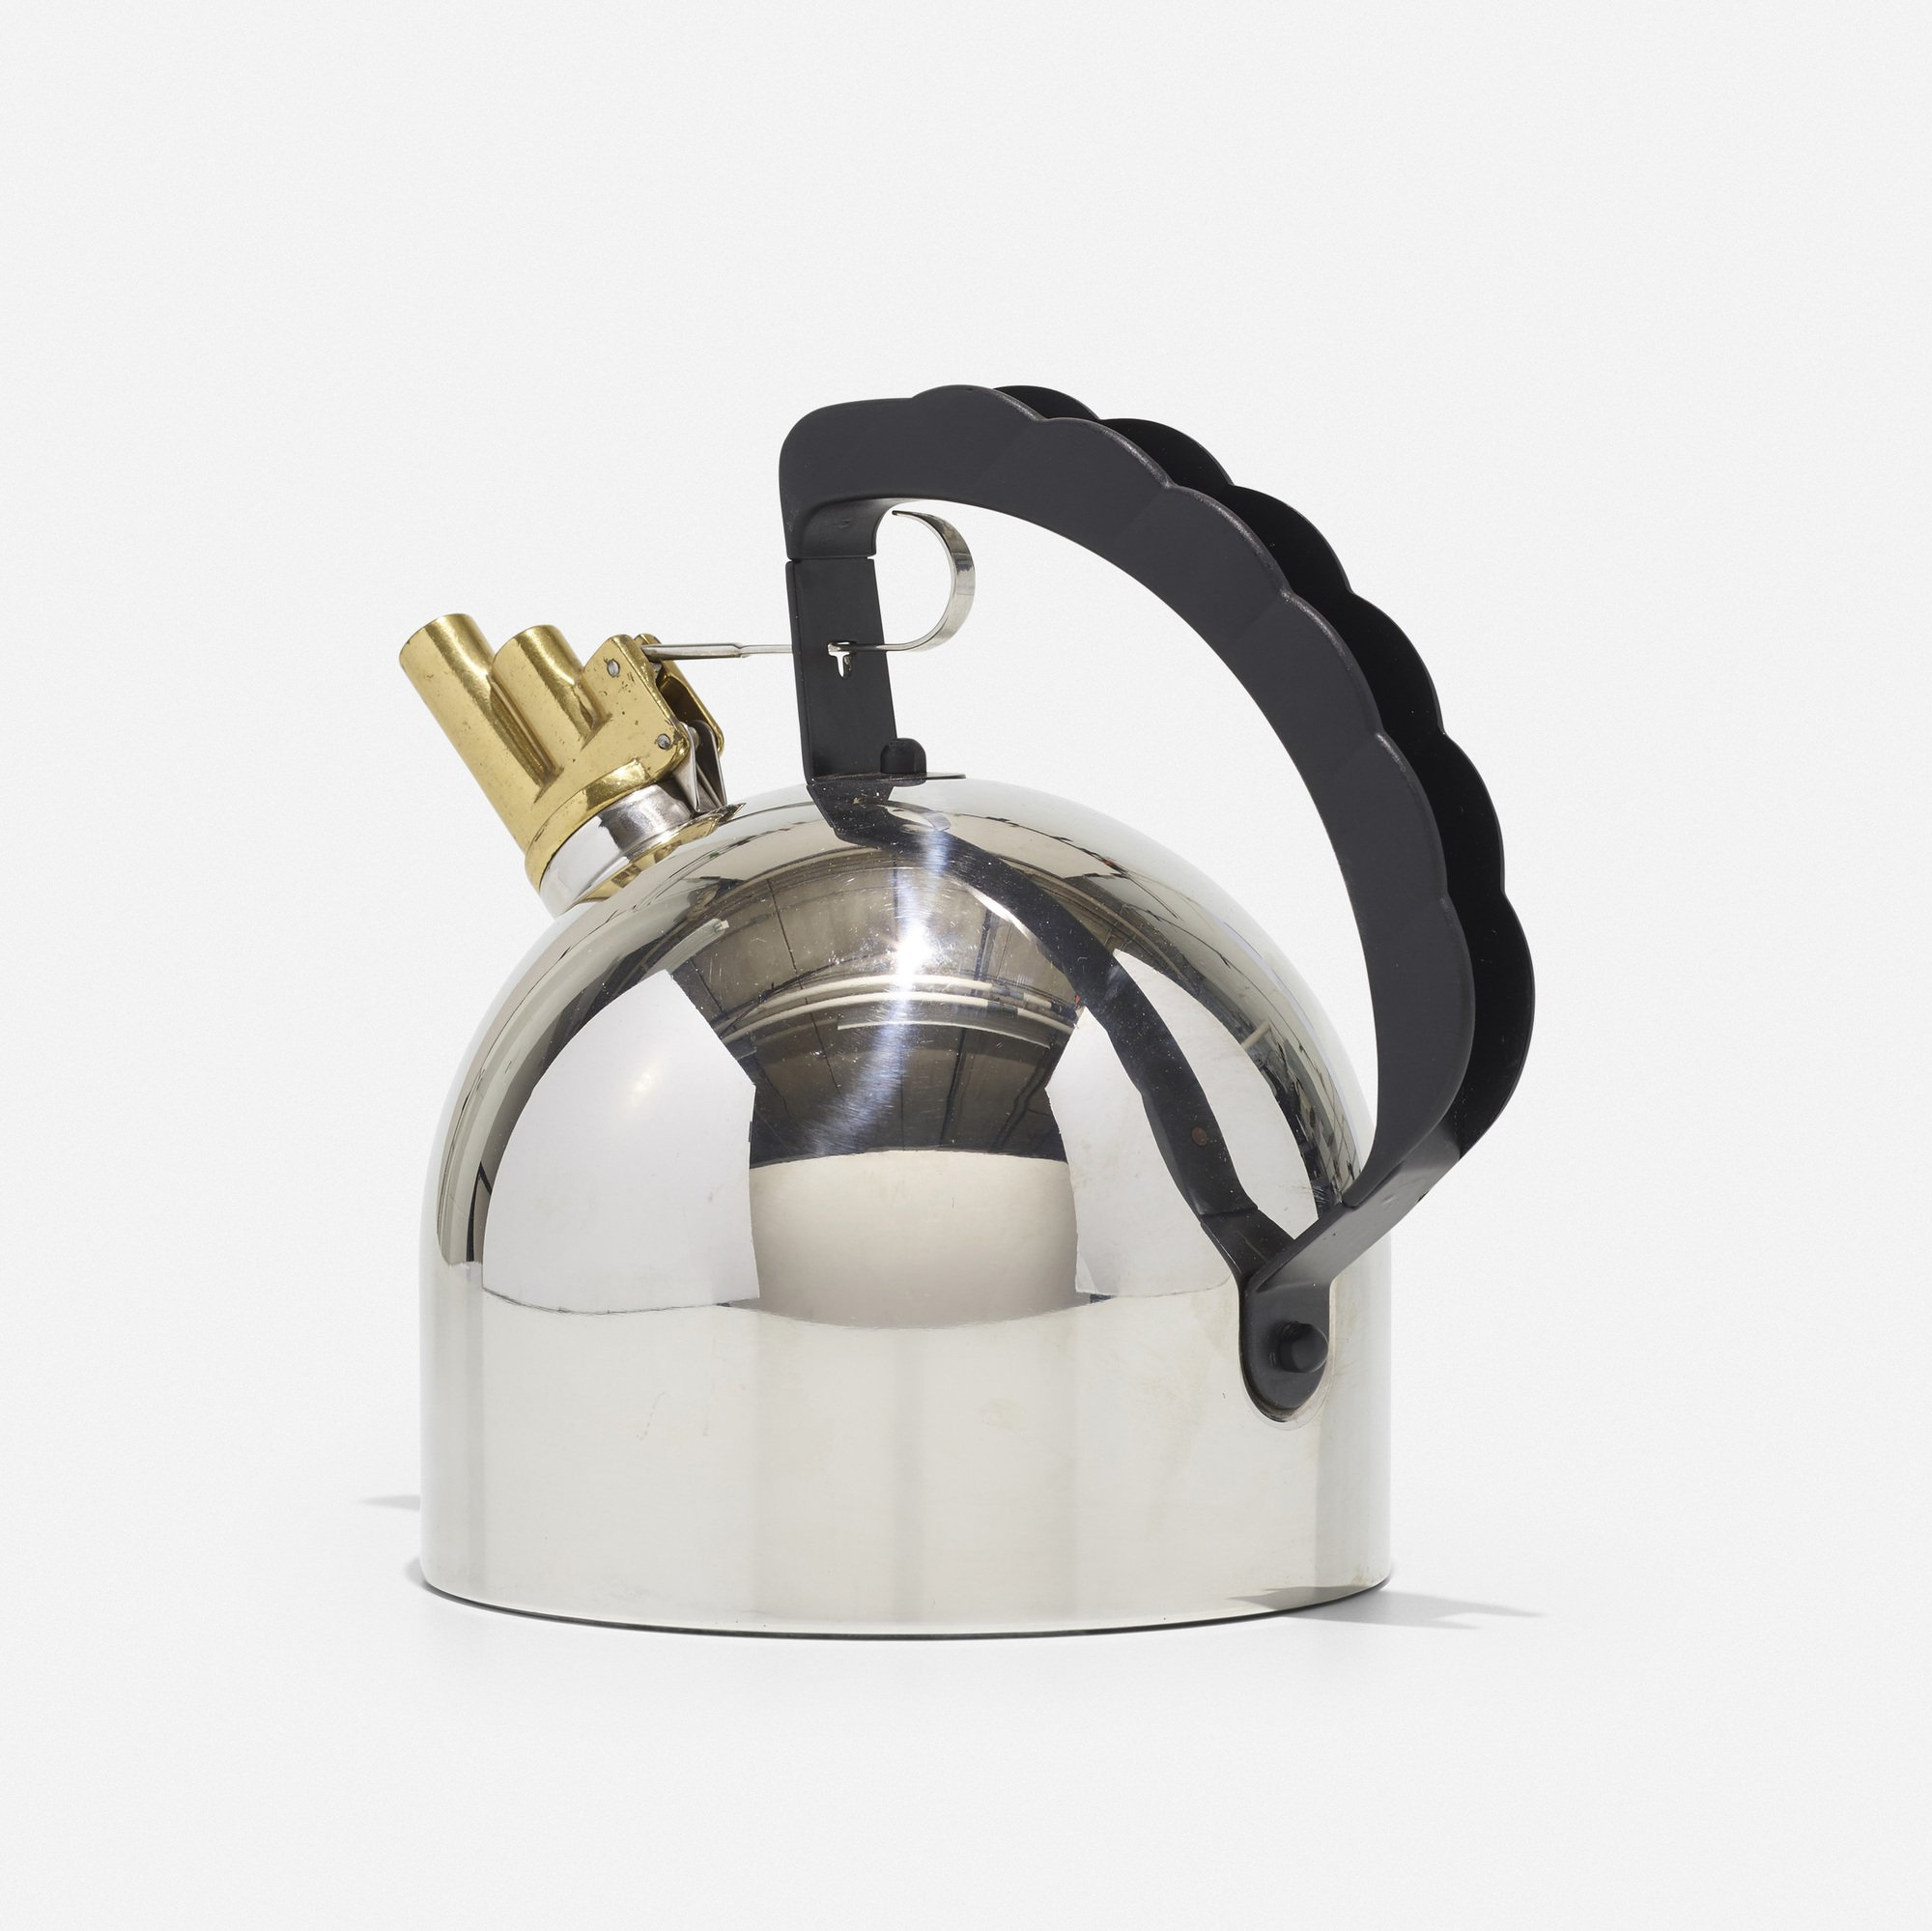 9091-FM Alessi Stainless Steel 2.1 Quart Whistling 'Magnetic Induction Kettle' for Induction Cooktops